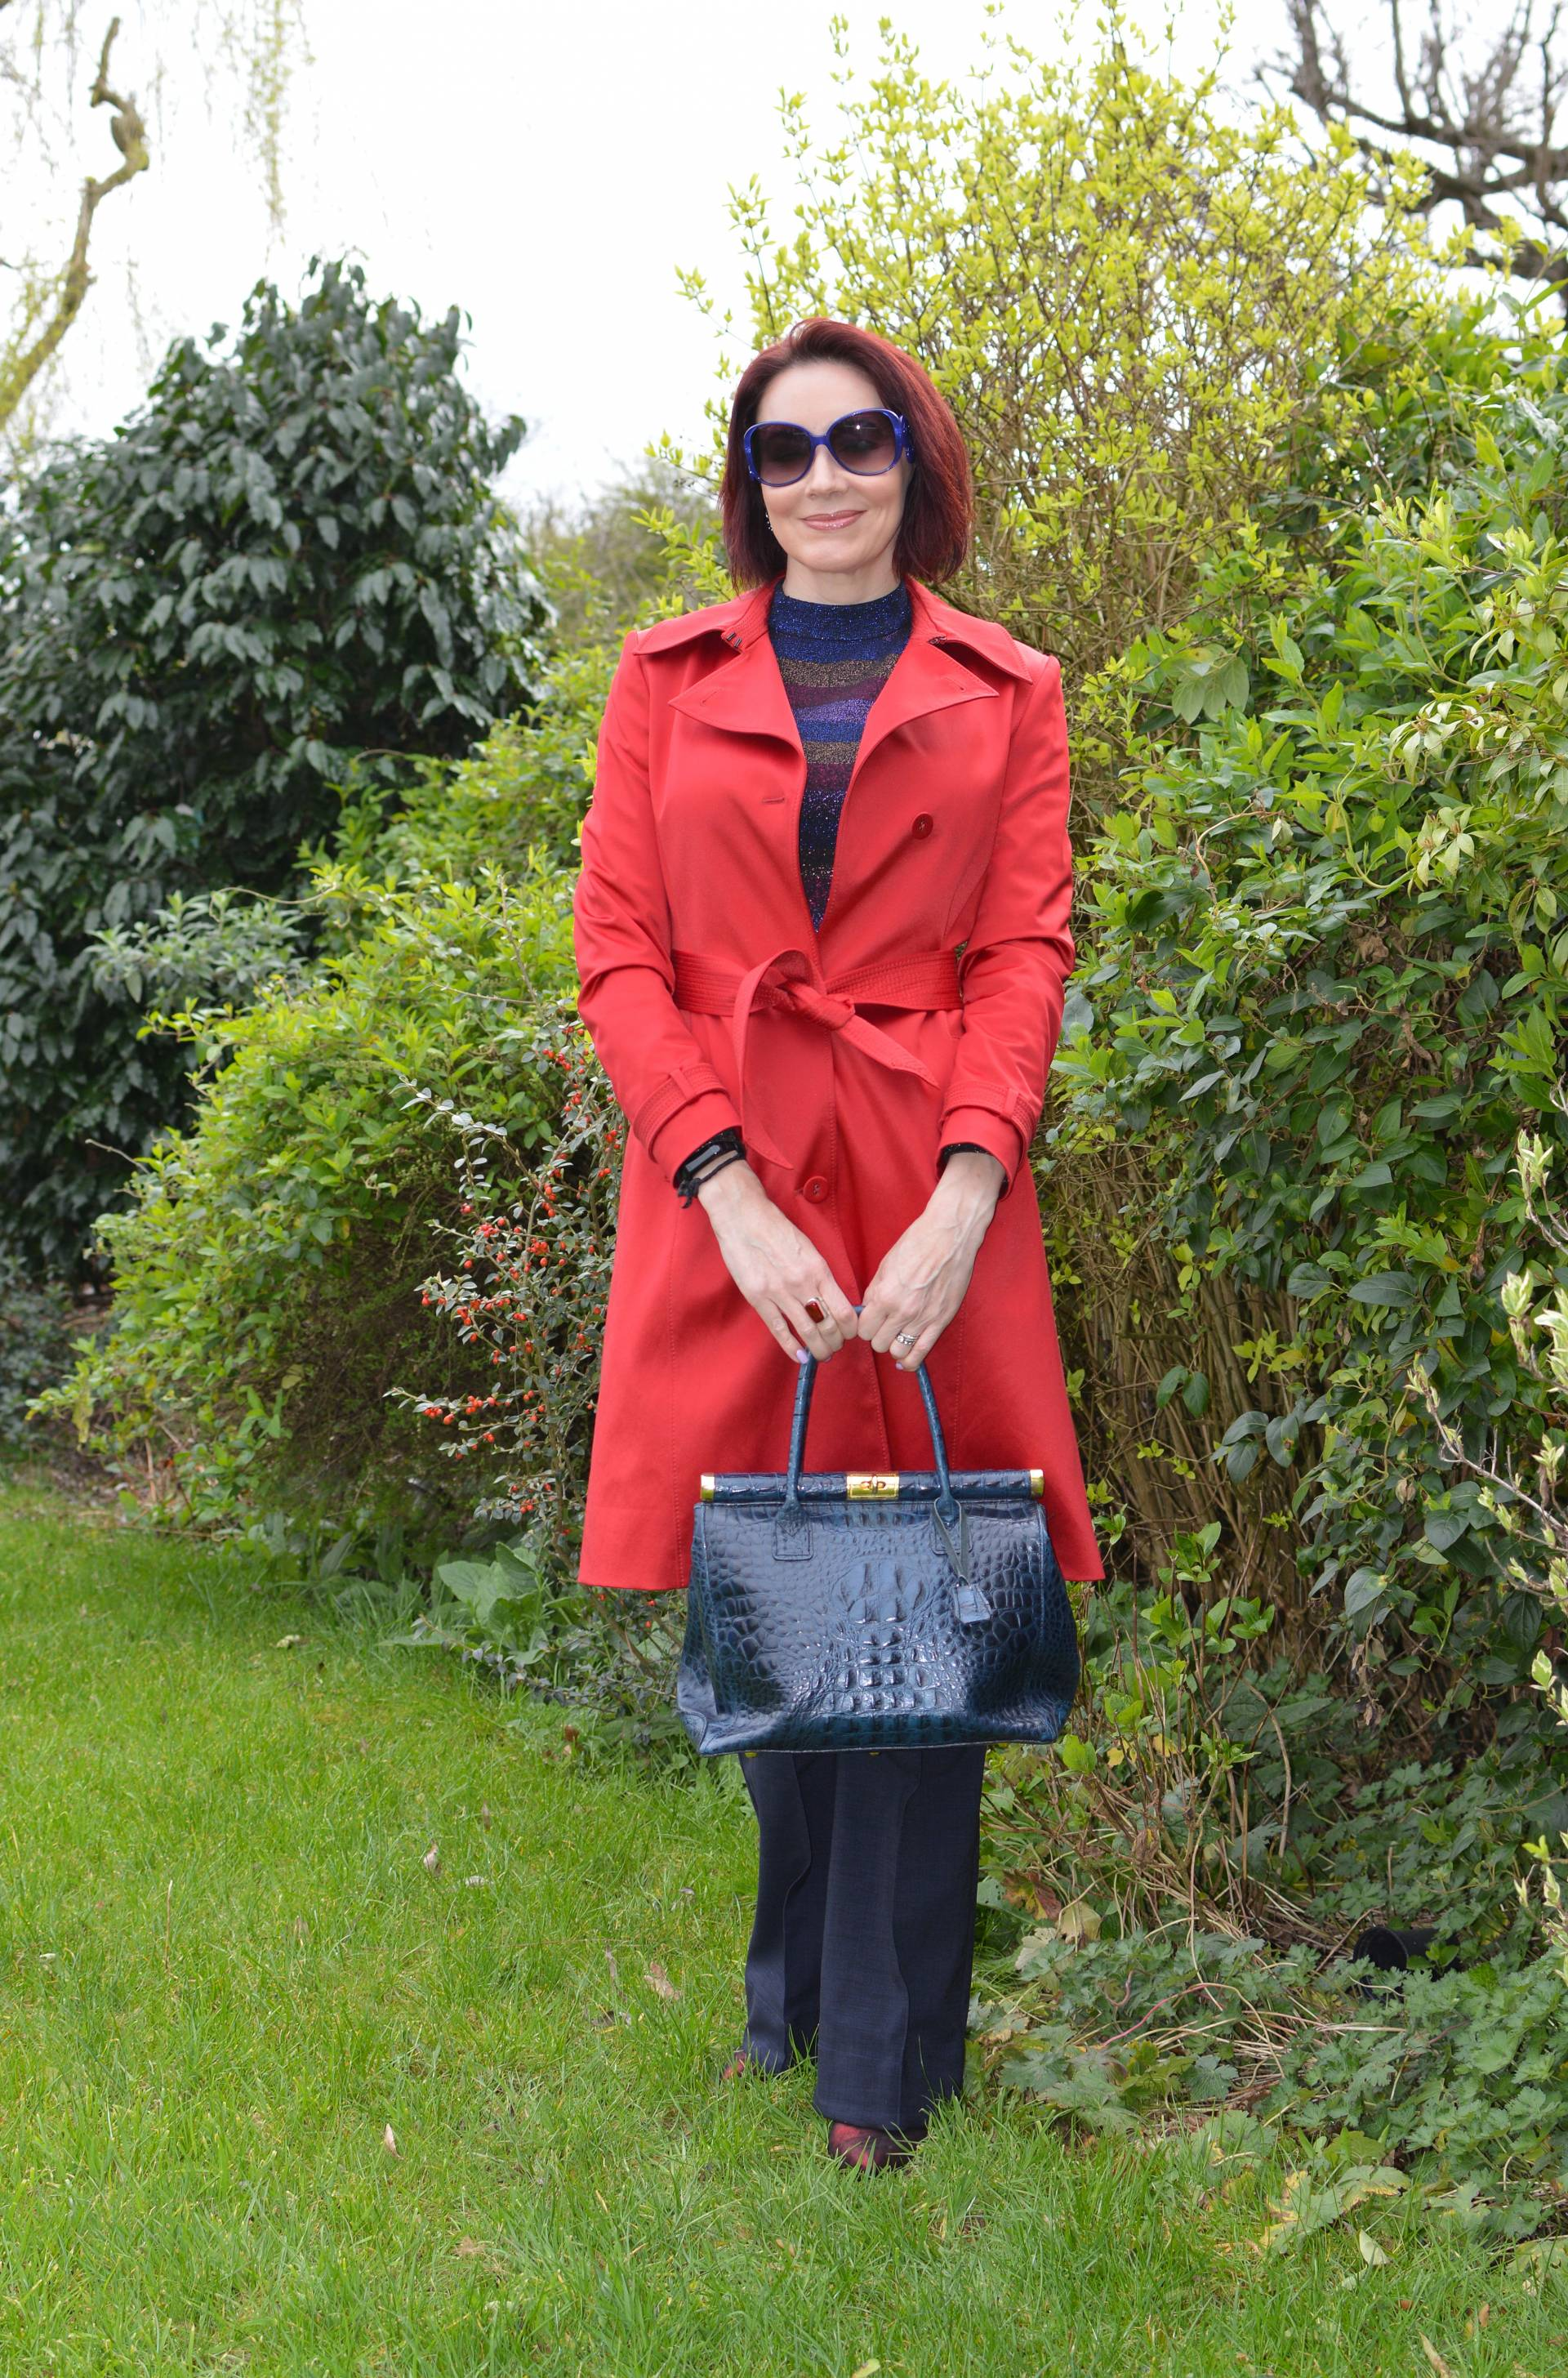 Sparkly Stripes and Bright Red Trench Coat + link up